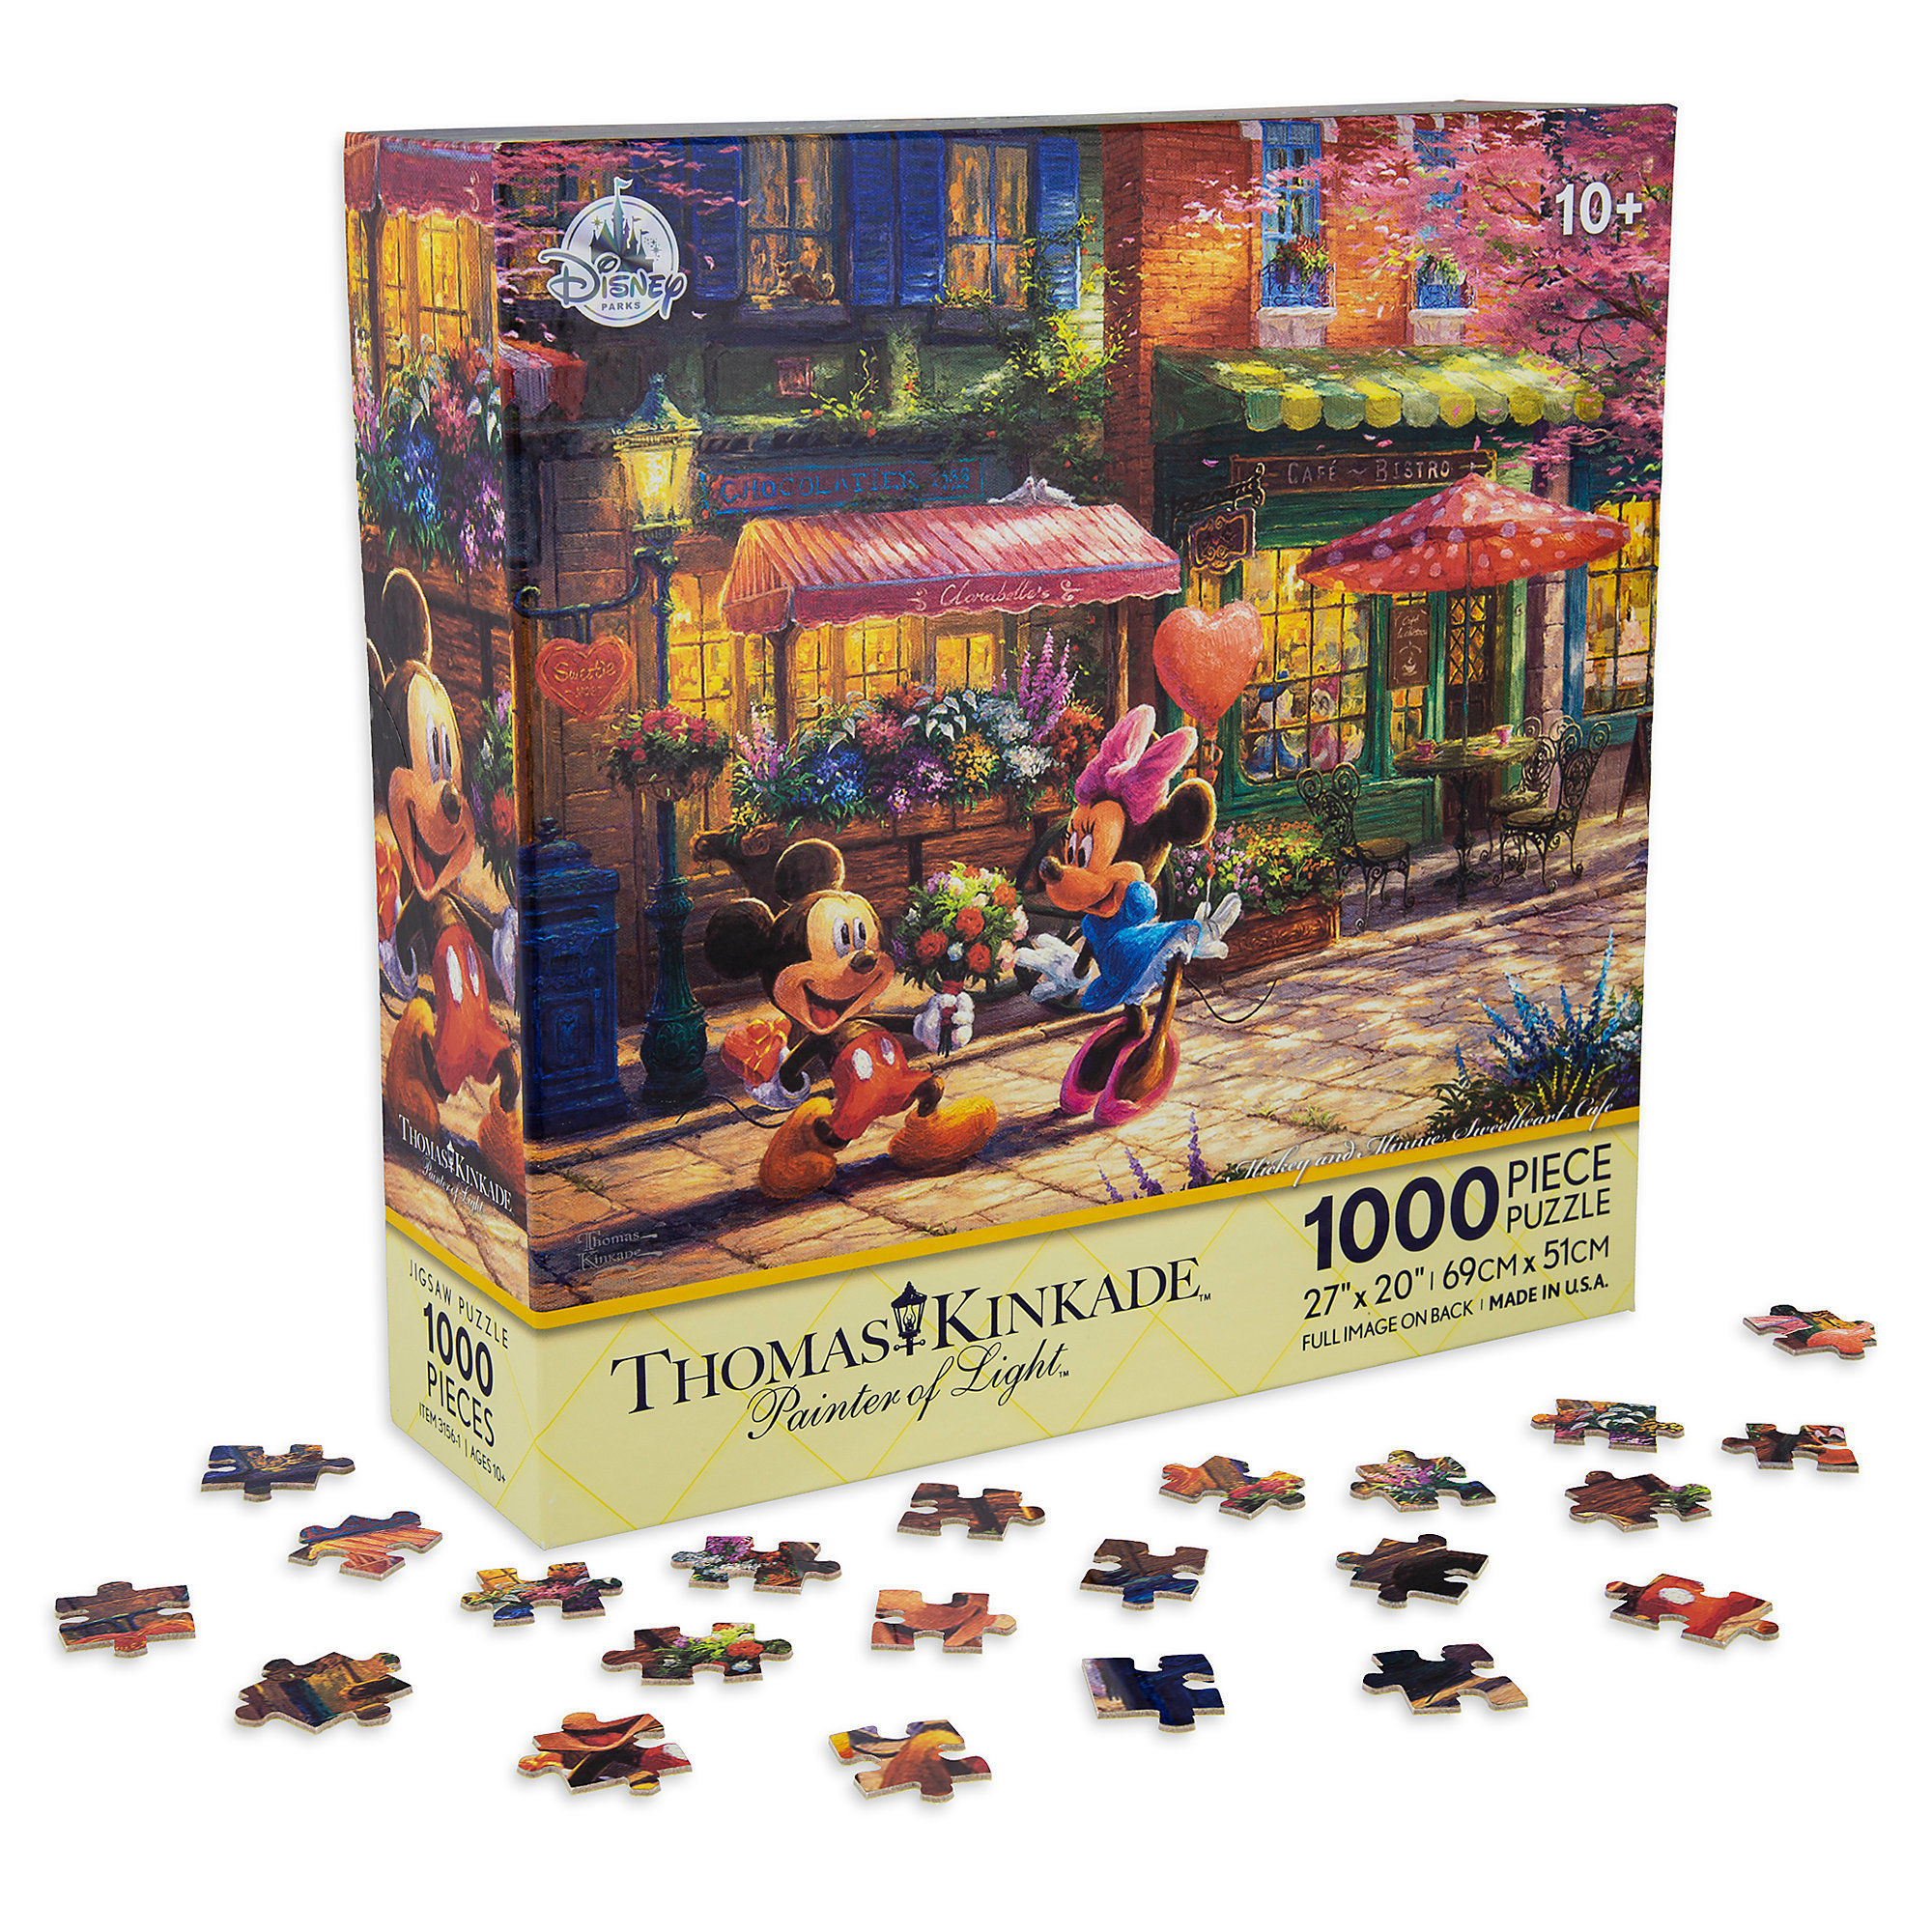 Thomas Kincaid Christmas Puzzle 2020 Disney Thomas Kinkade Puzzle   Mickey and Minnie Sweetheart Cafe